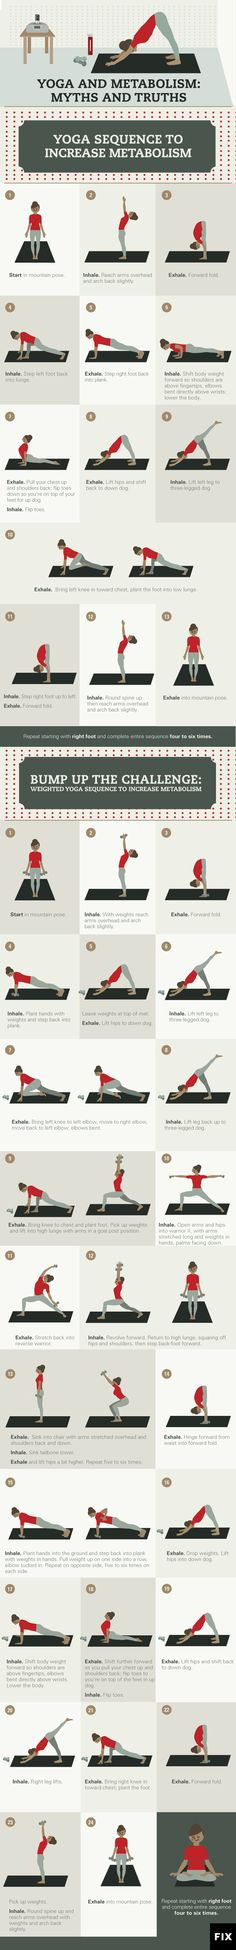 http://www.littlevendorathletics.com/ Find out which yoga poses will boost your metabolism throughout the day! #Yoga http://www.fix.com/blog/yoga-and-metabolism/